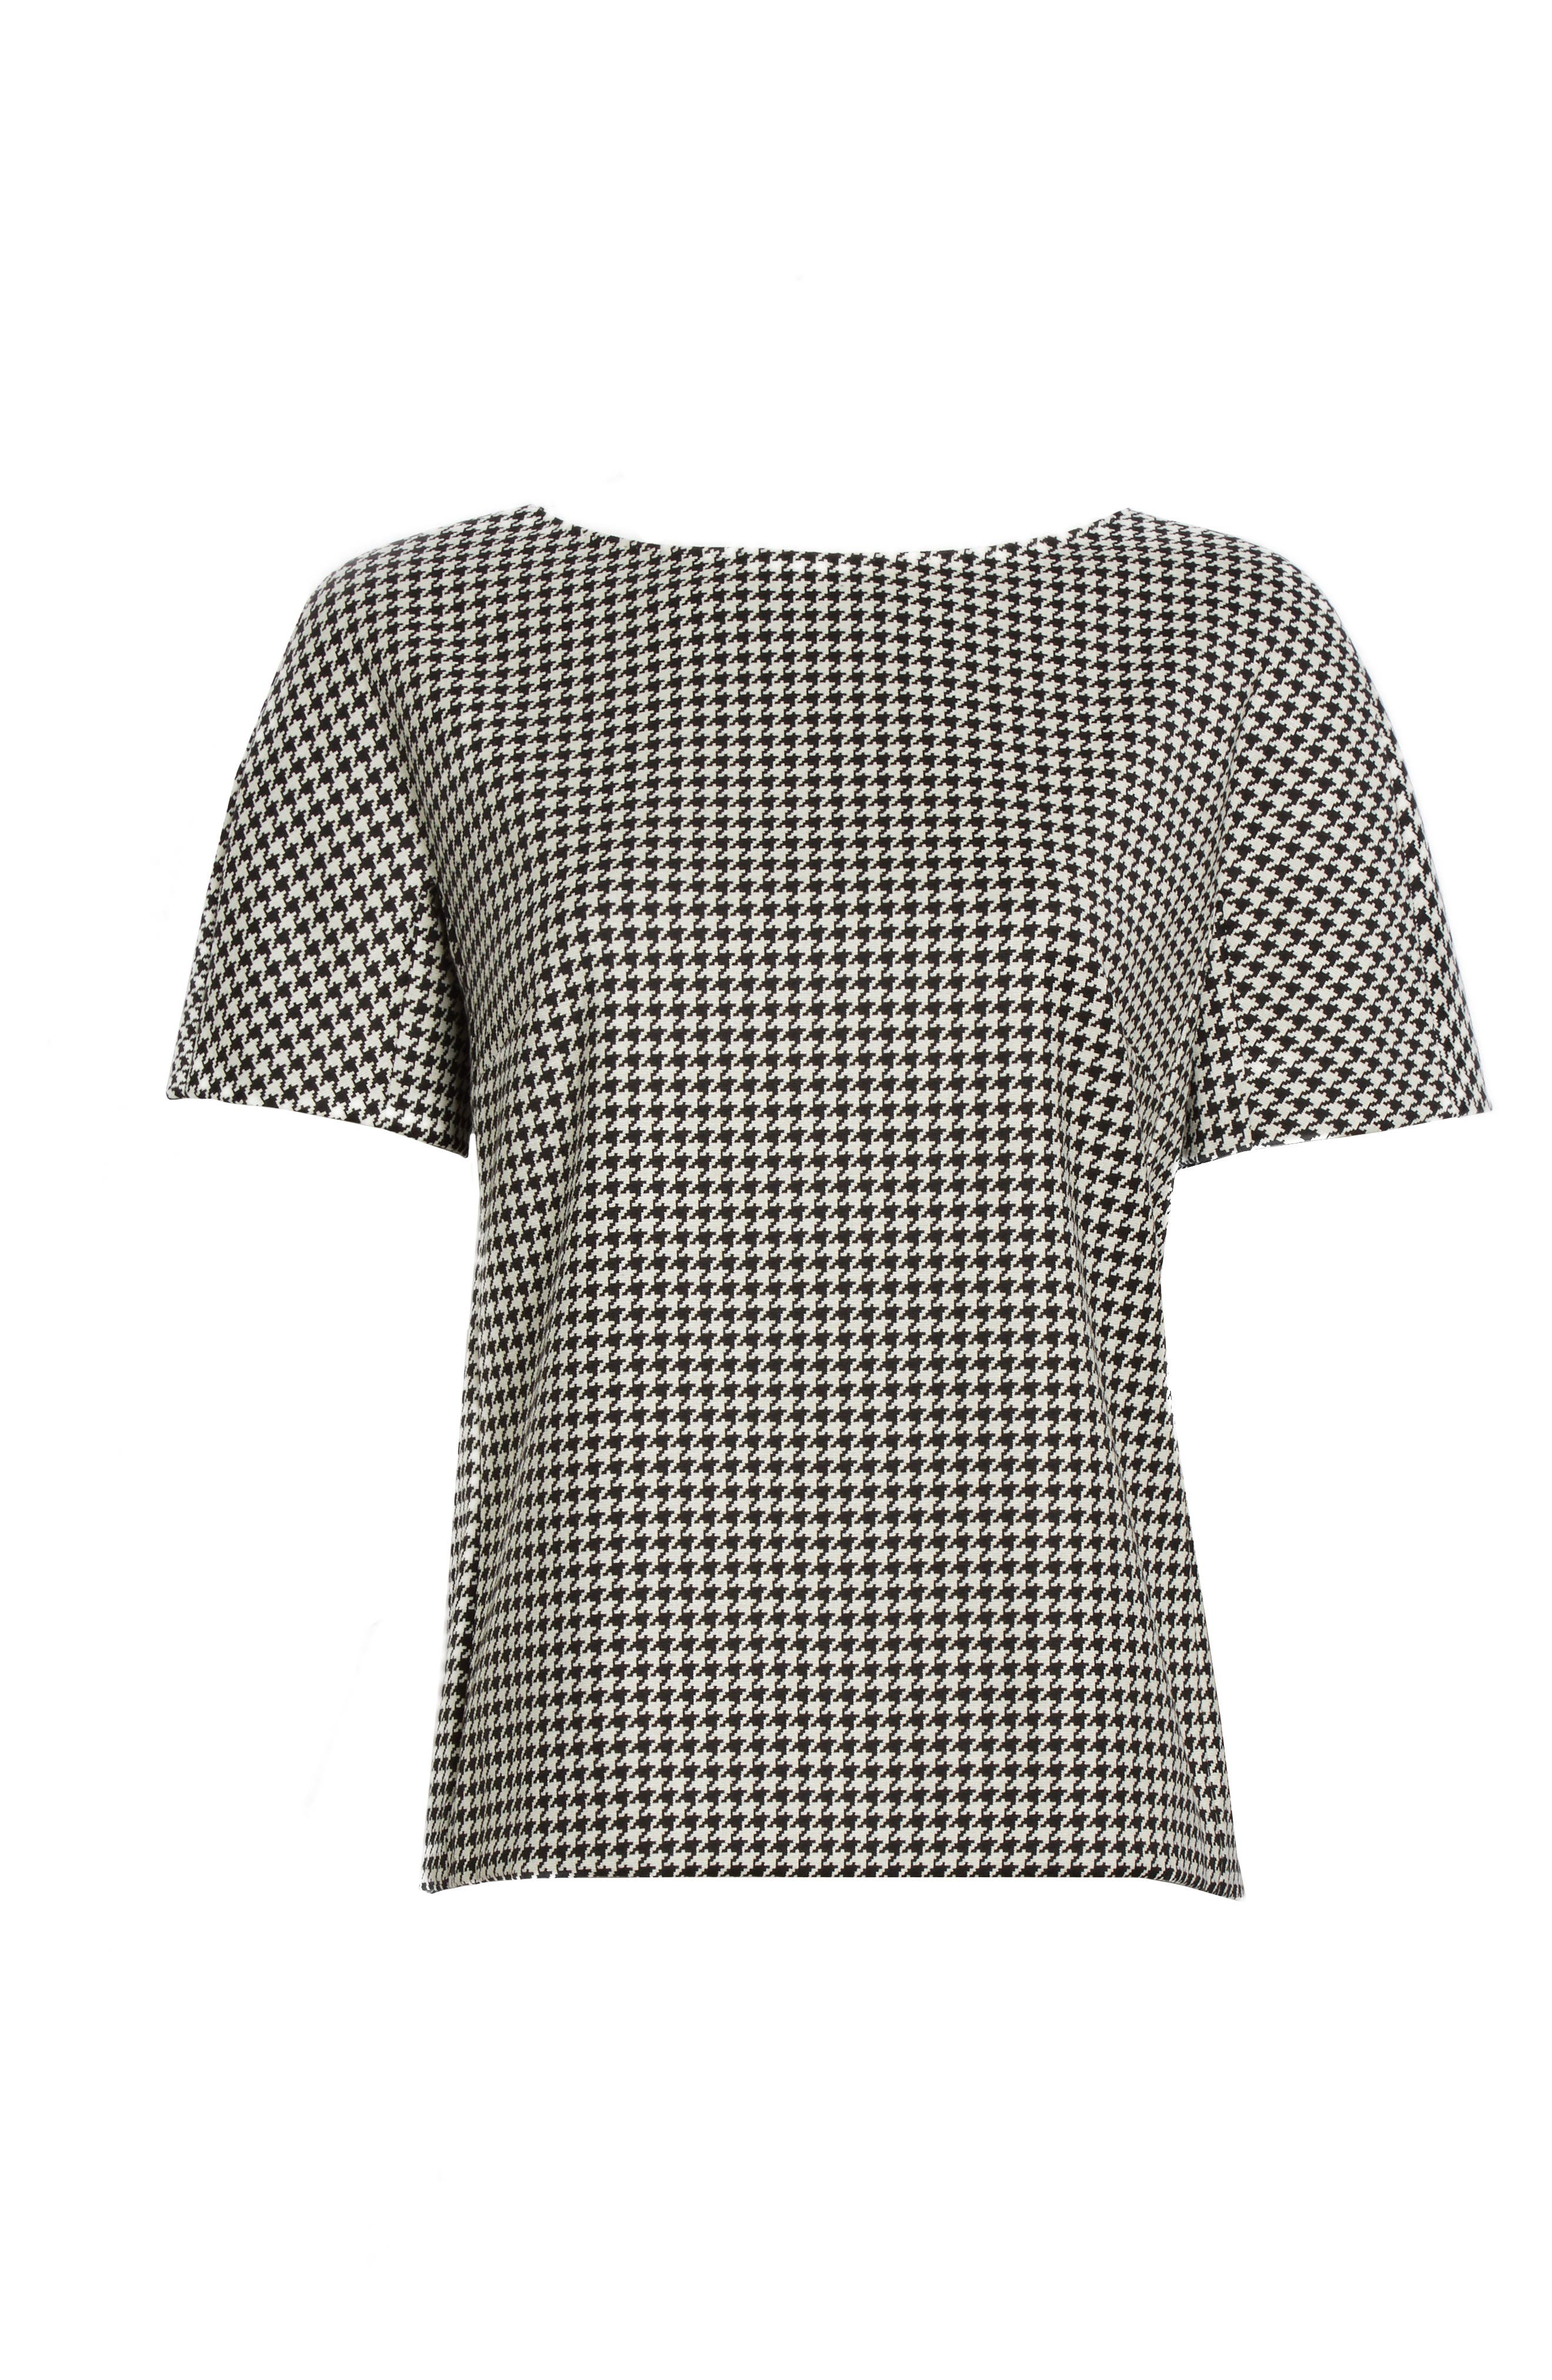 Alternate Image 4  - Max Mara Ares Wool Blend Houndstooth Top